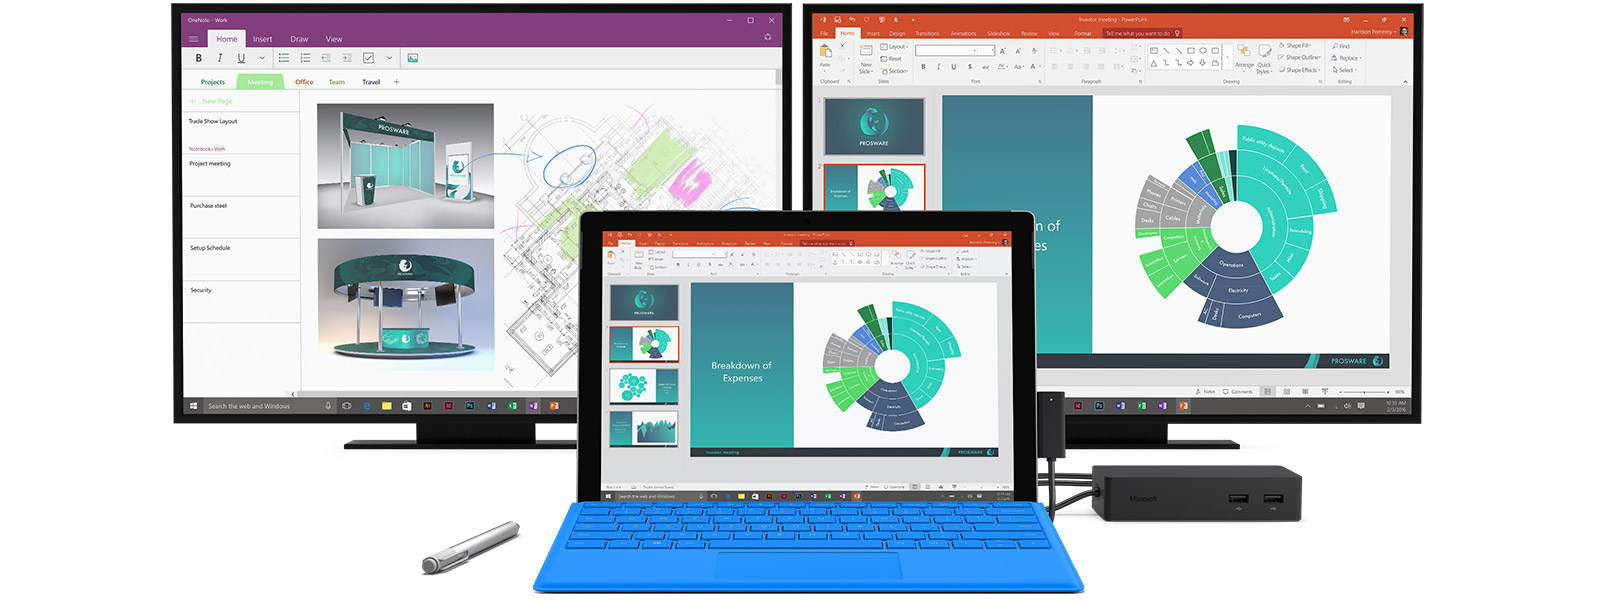 Two generic desktop monitors, Surface Pro 4, Surface Pen, and Surface Dock